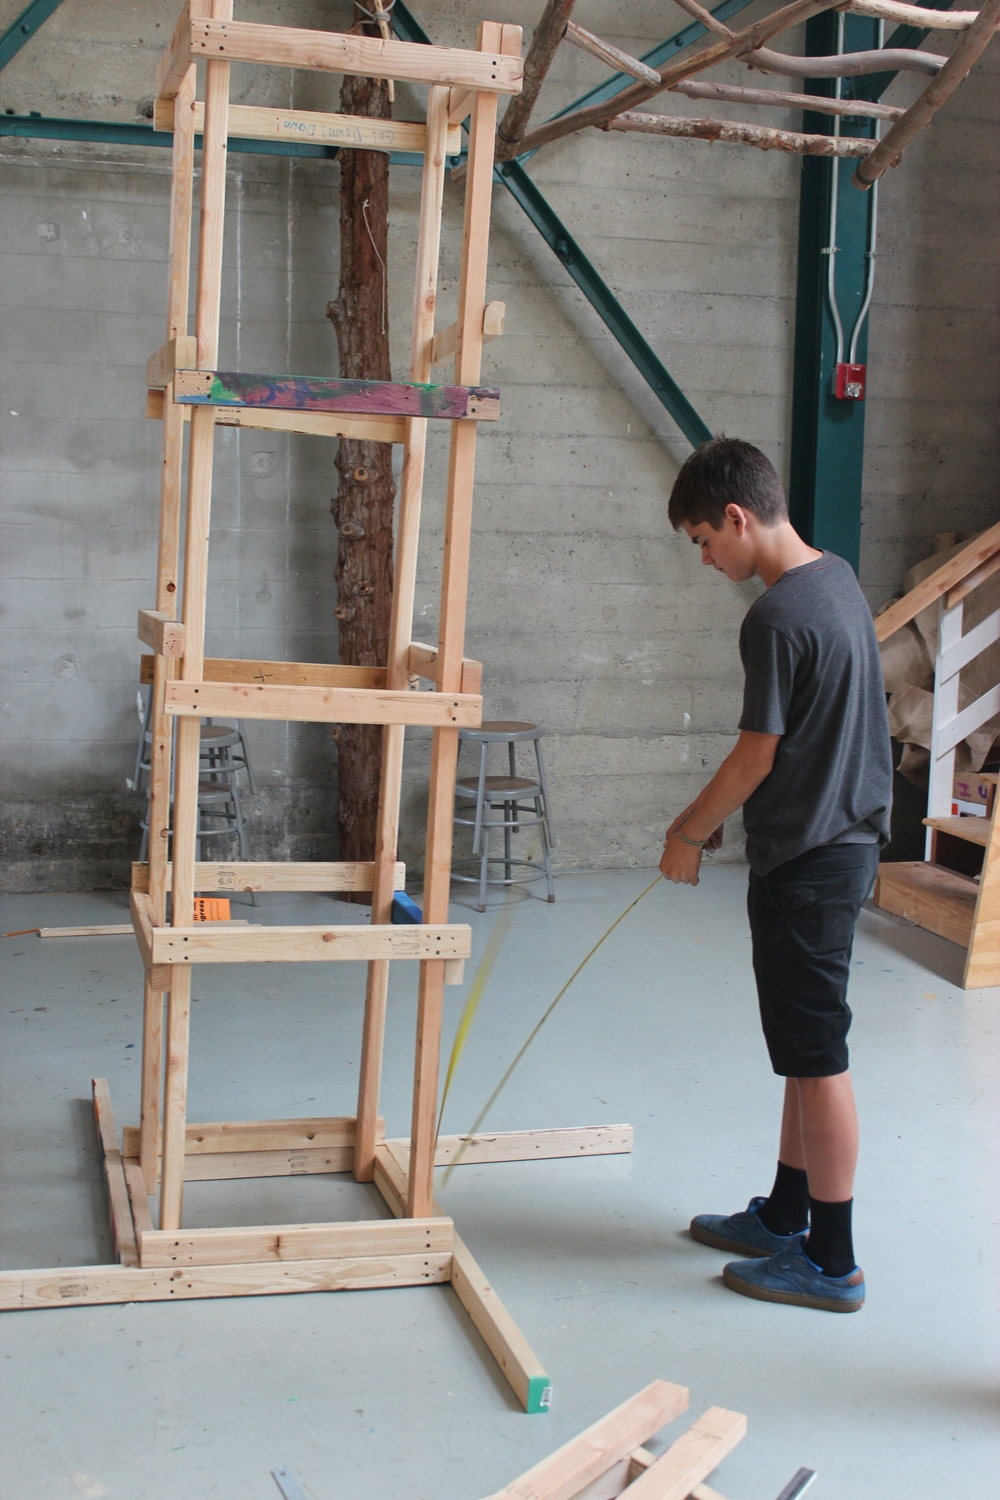 Leo measures a tower for the combustion-powered zipline.